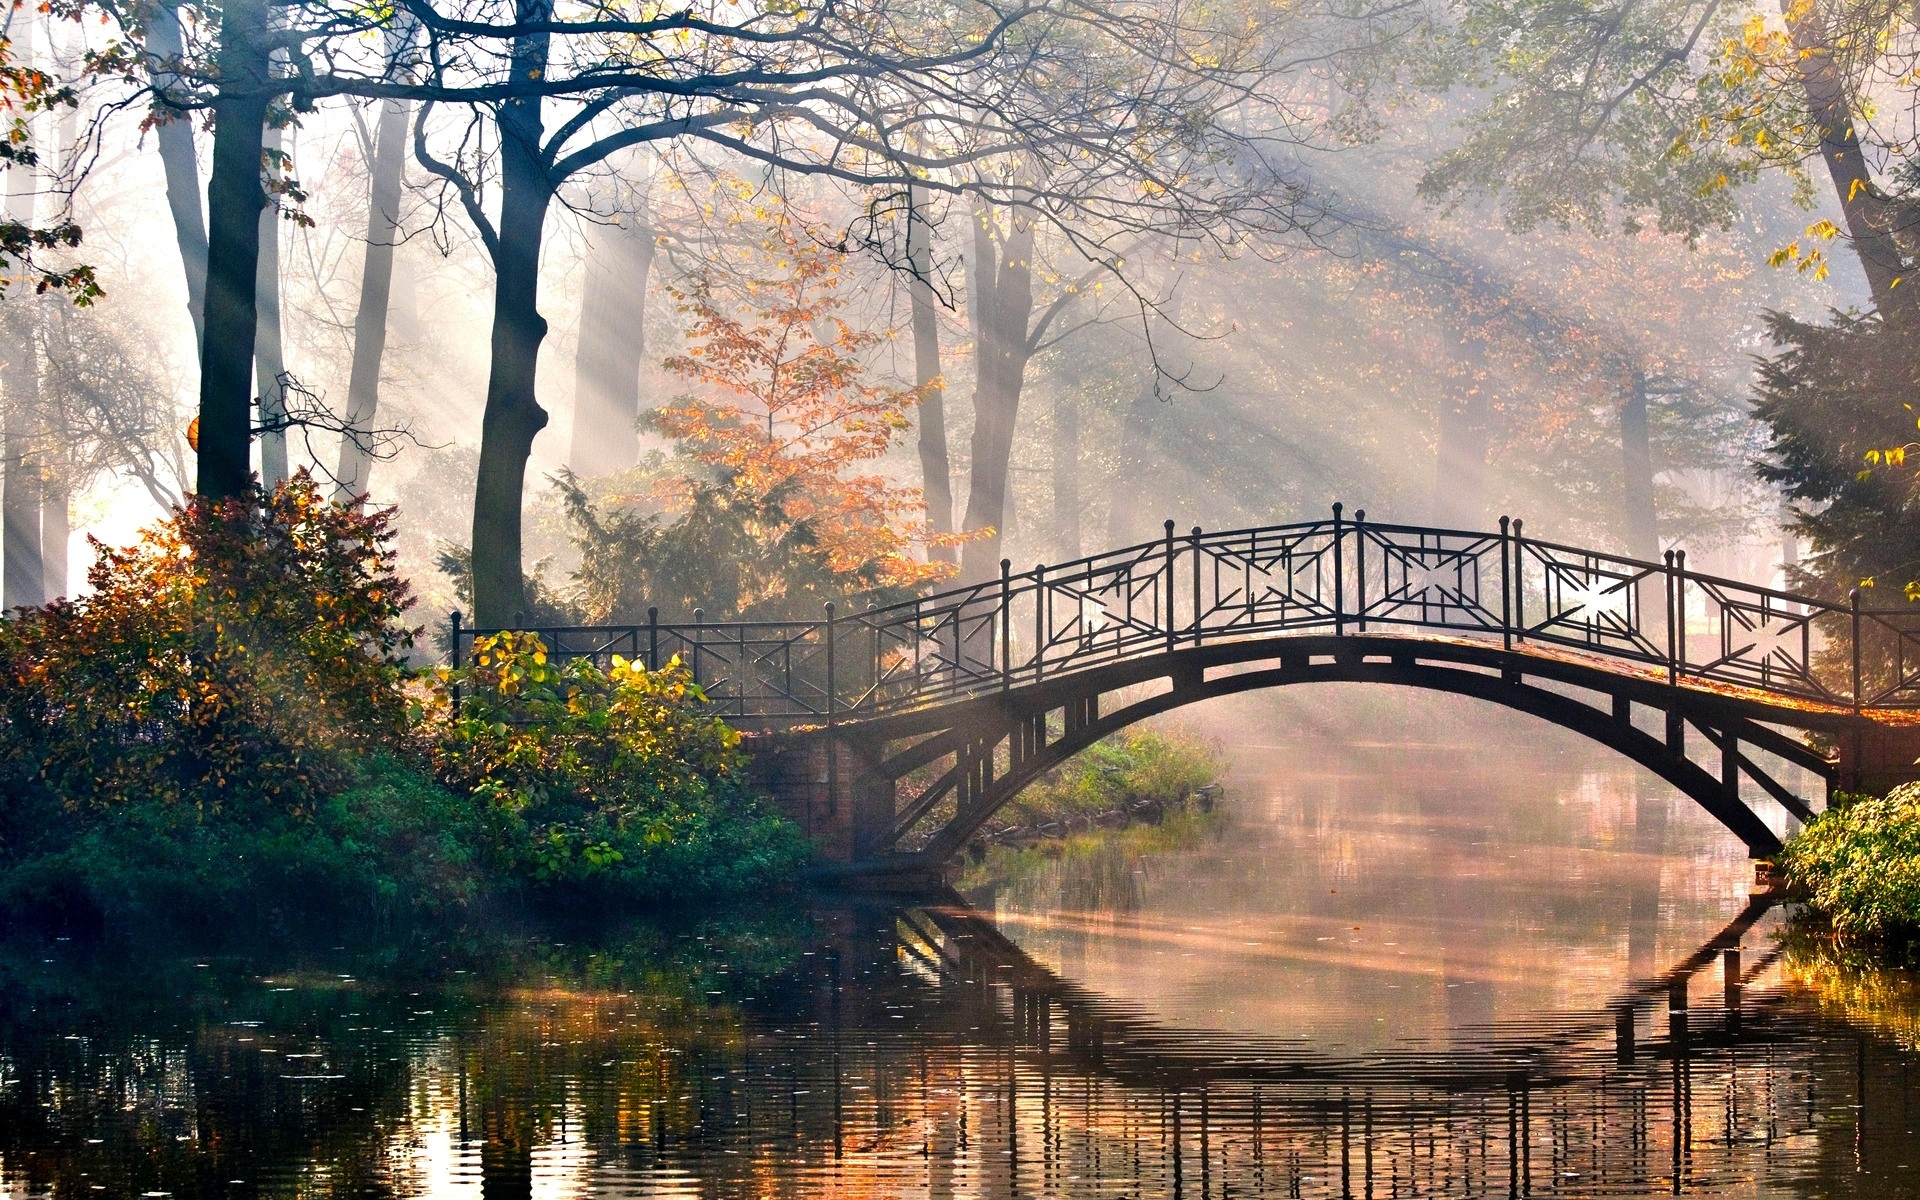 Cute Bridge Wallpaper